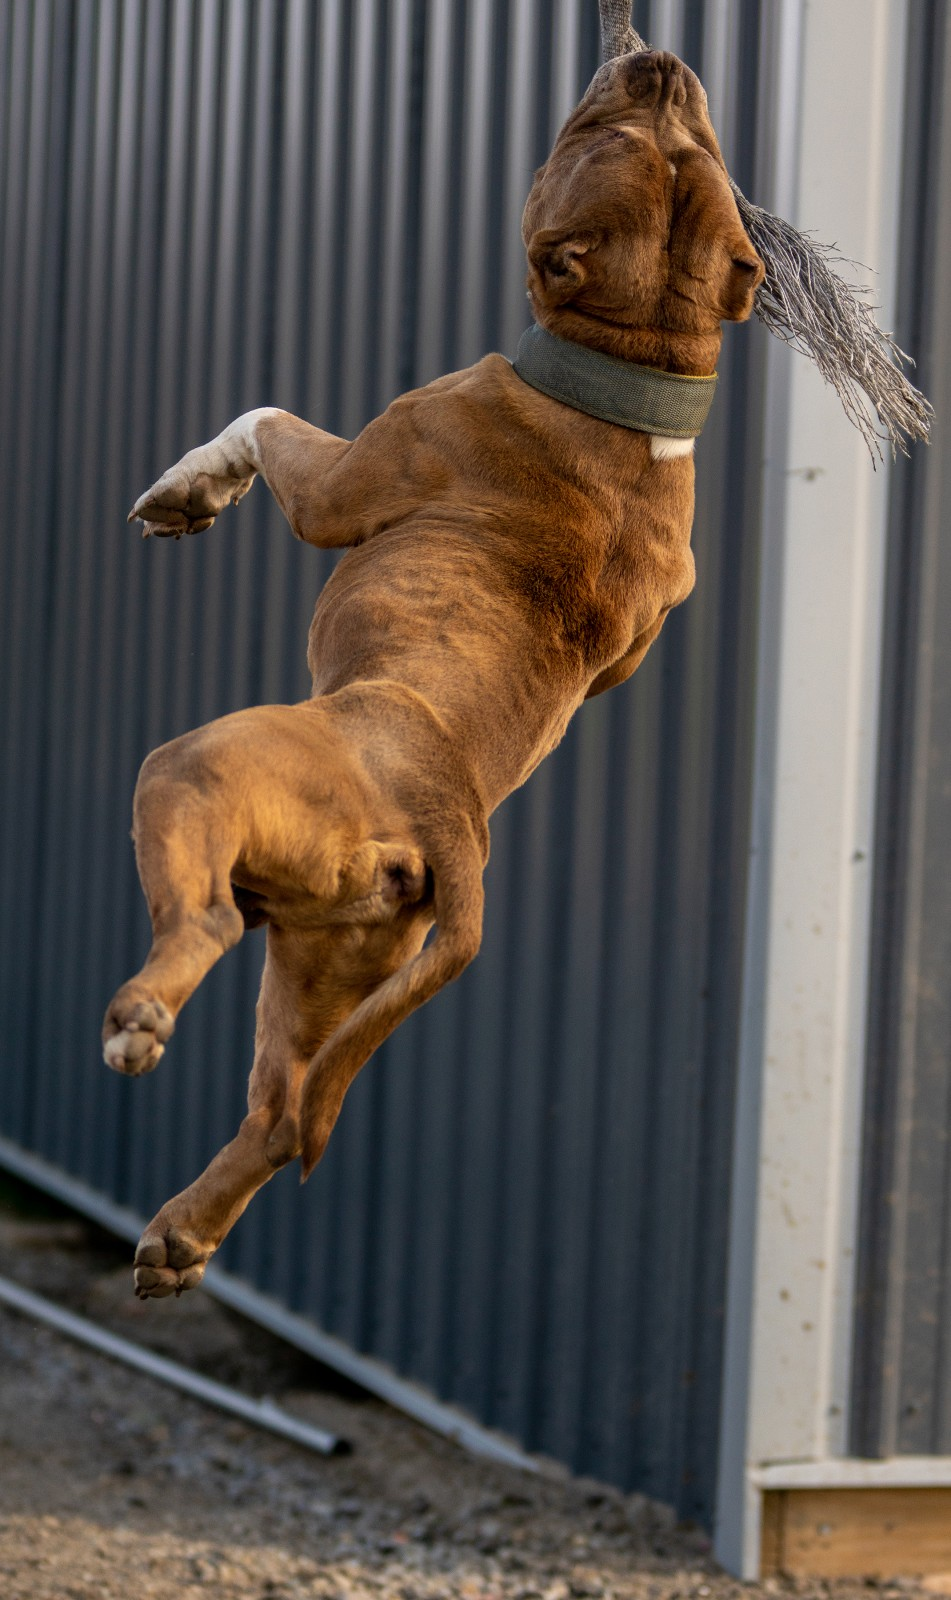 Taj Majal, a large red and white, muscular bully type XL pit bull hangs by his jaw from a spring pole (a tool used by dog trainers/breeders for their dogs to exercise).